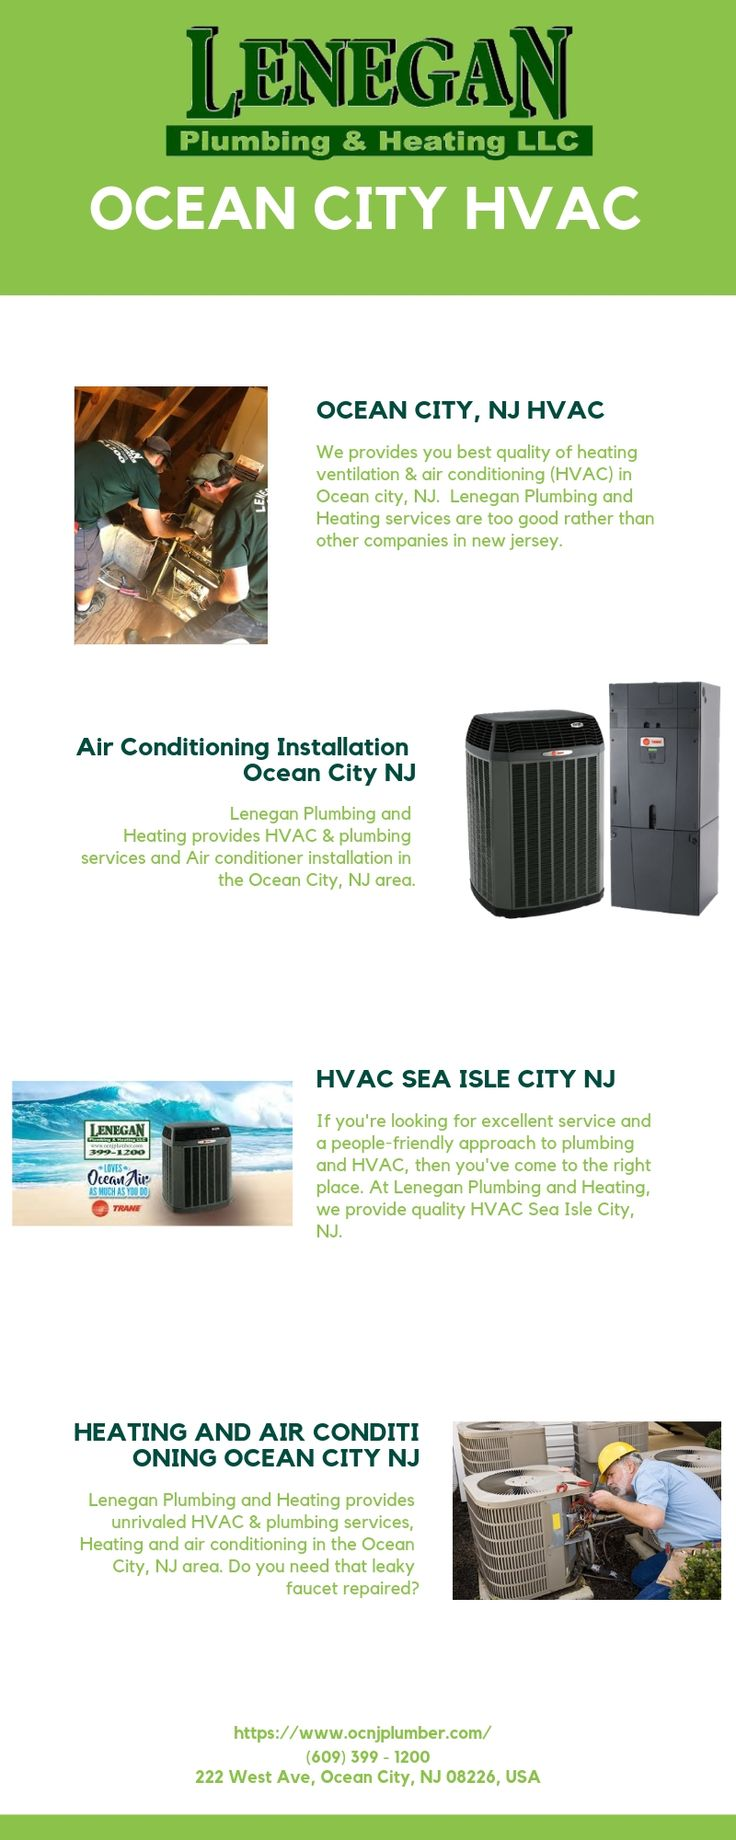 Do you need emergency air conditioner repair, emergency